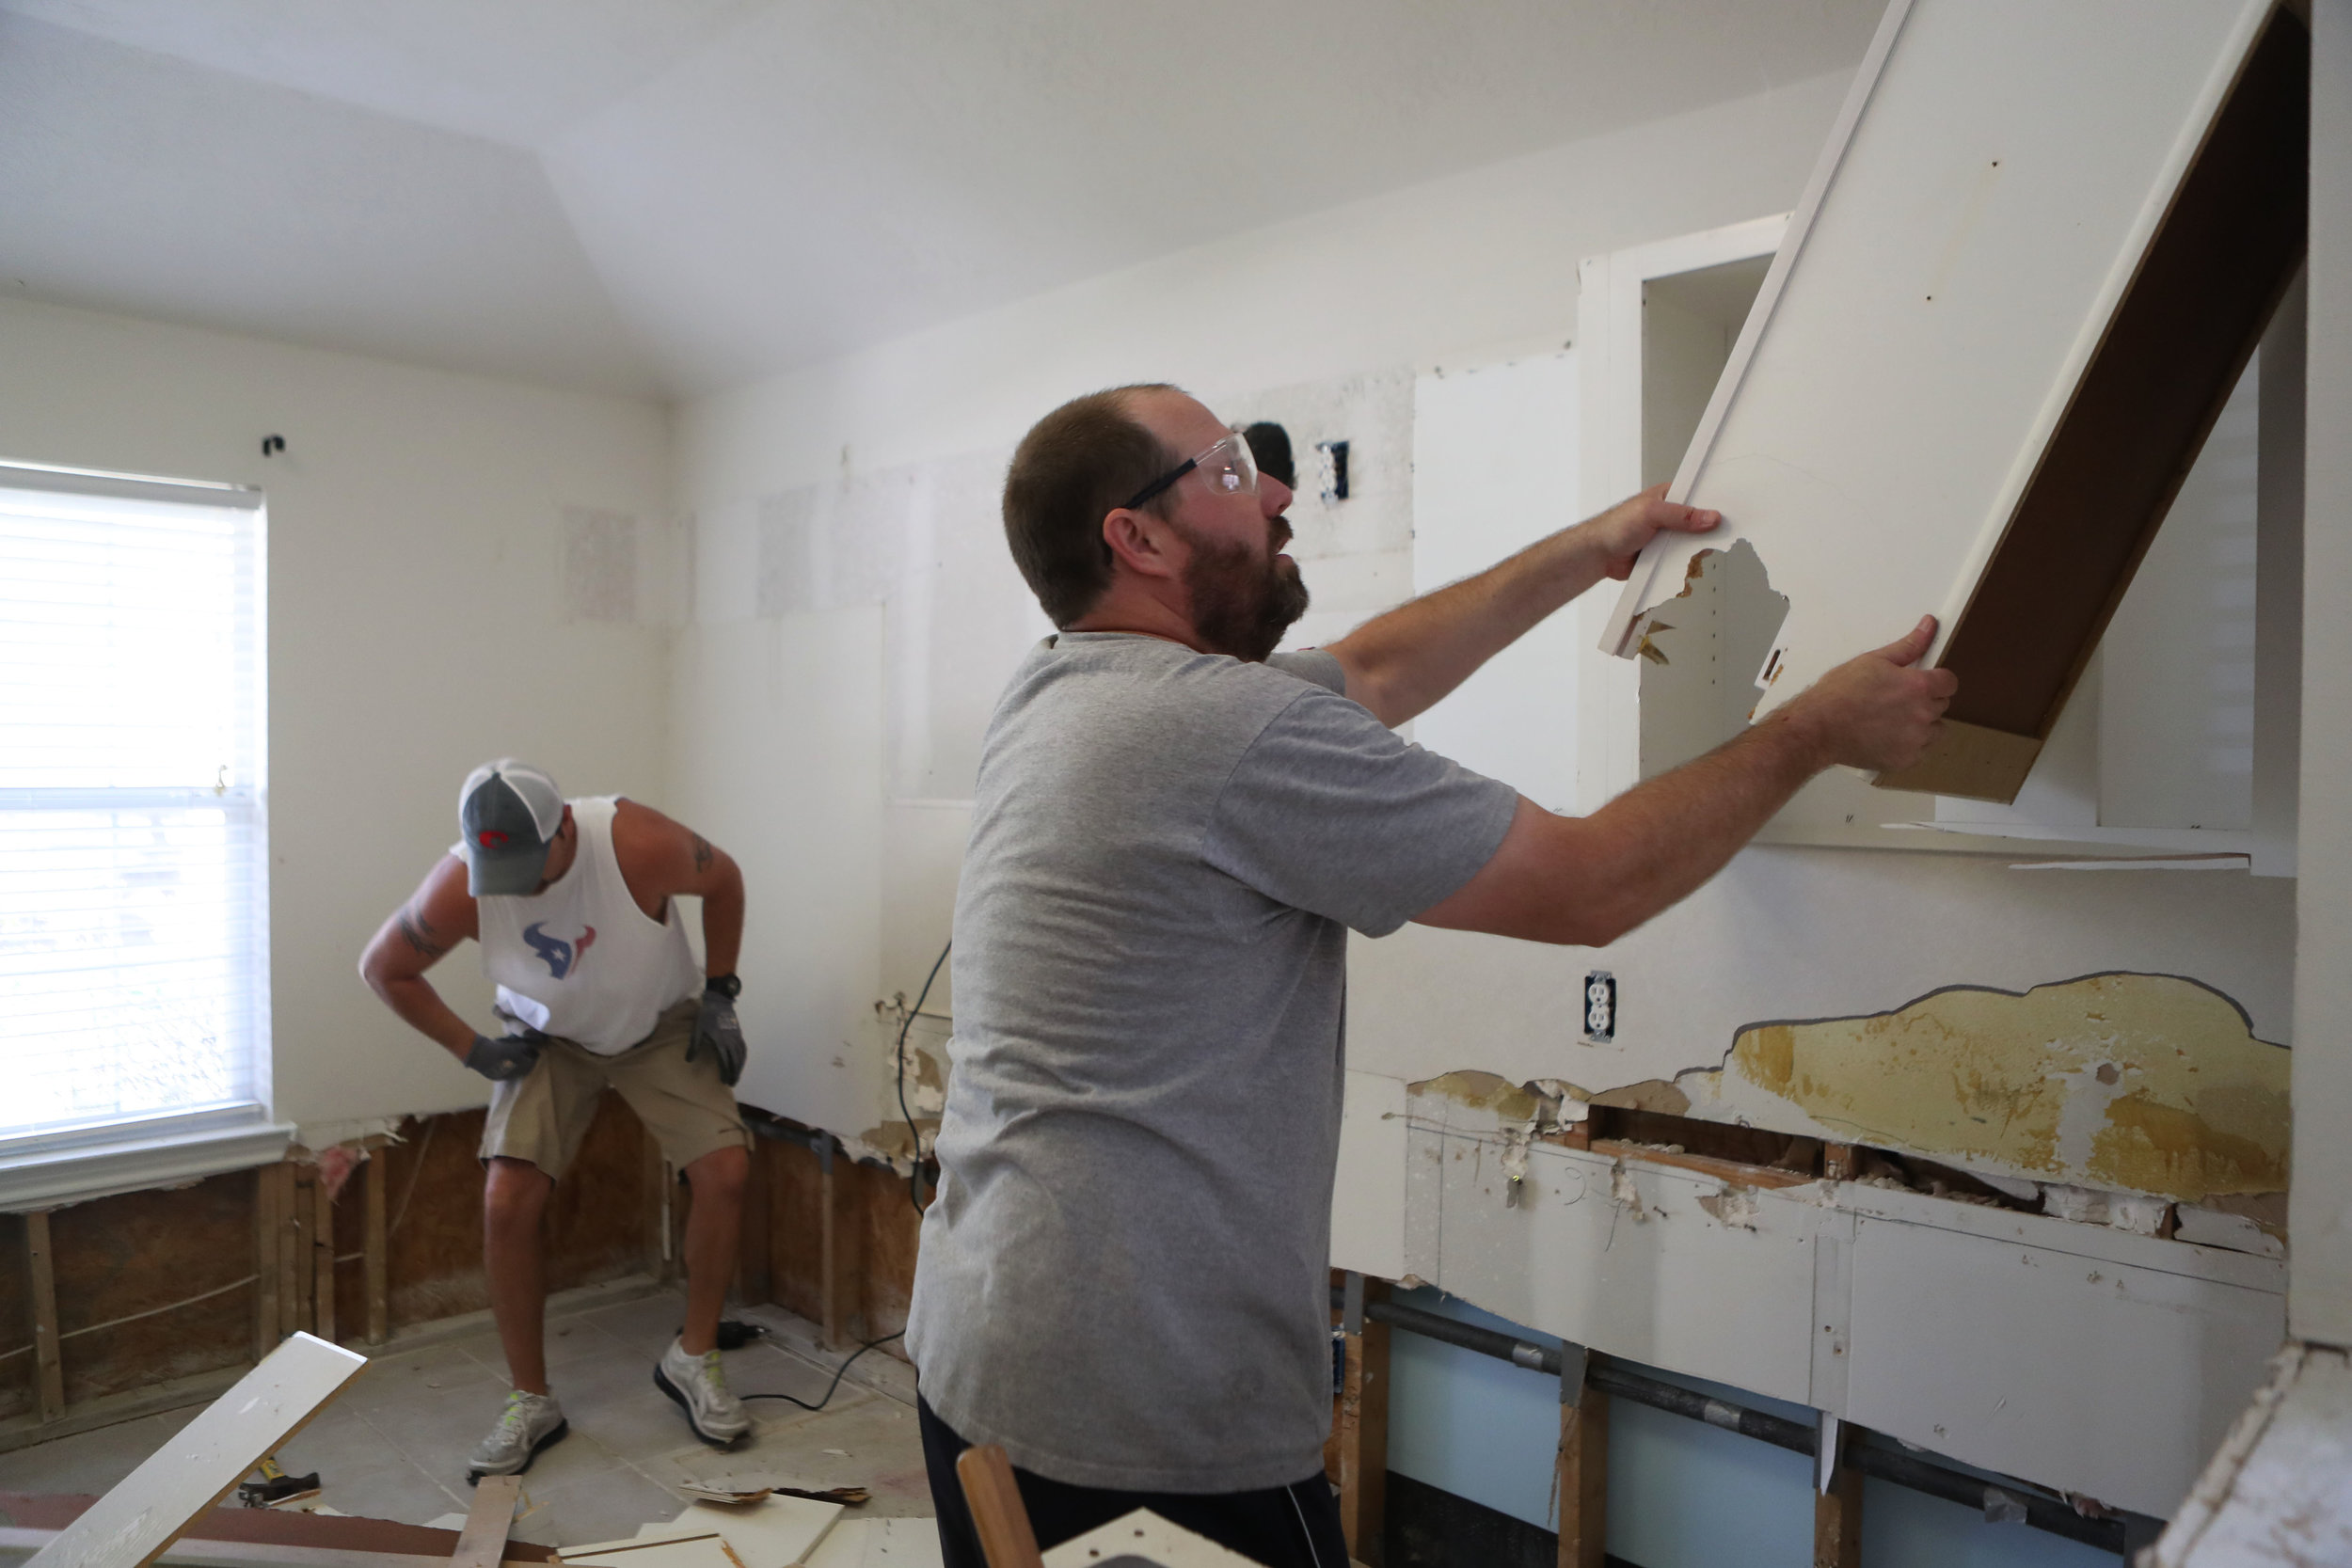 Jimmy Bishop and Rob Haas, a close friend, tear the kitchen apart 26 days after the house flooded on Saturday, Sept. 23, 2017. Jimmy Bishop wanted to take care of most of the demolition, because he knew he would be hiring a contractor for the renovations.